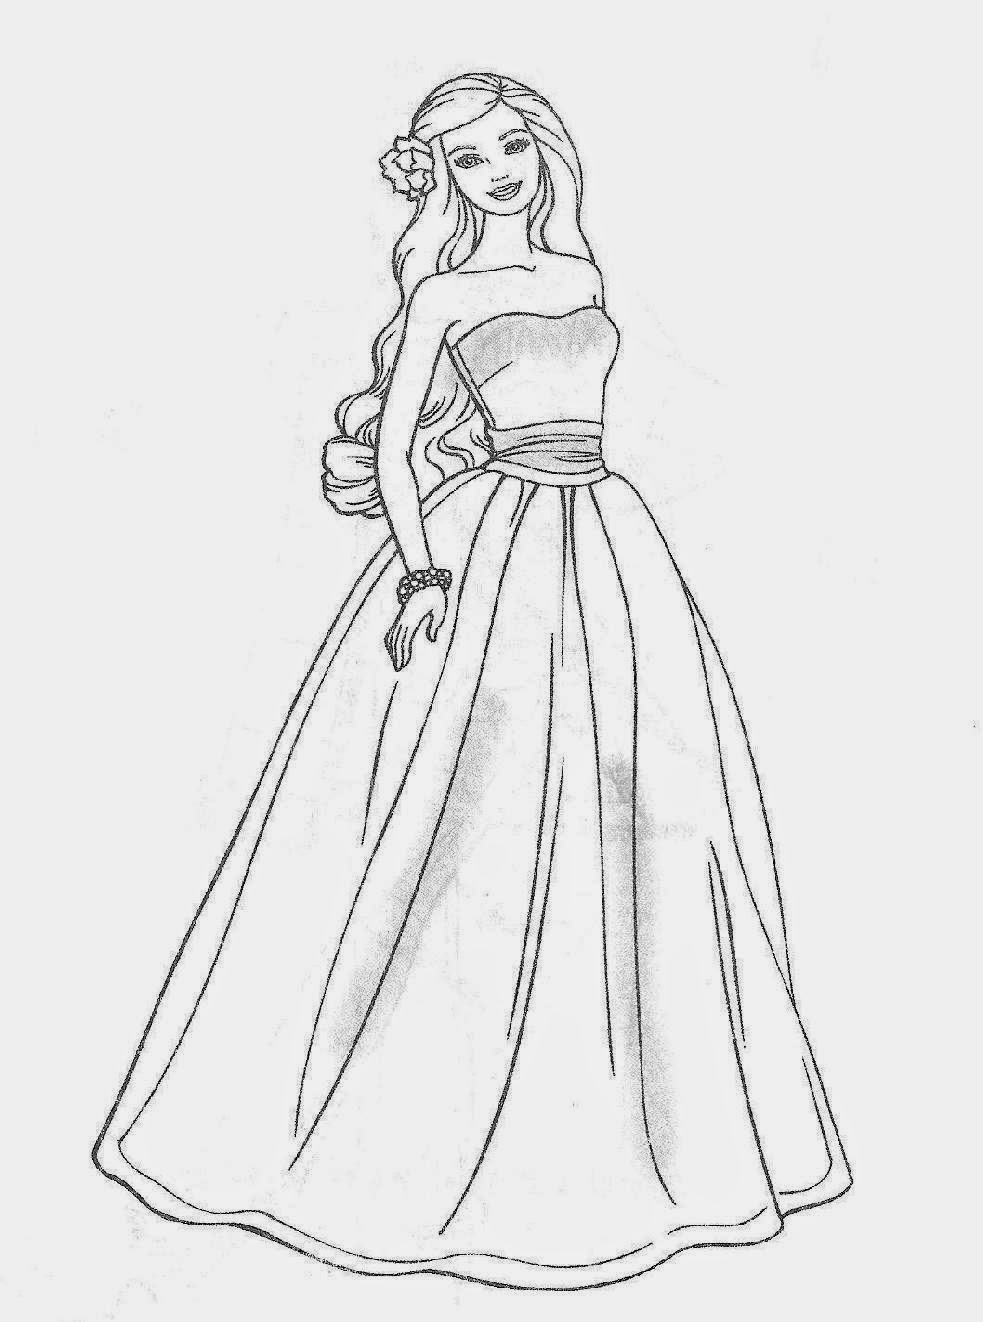 Free coloring page barbie - Free Coloring Pages Barbie Search Results New Calendar Template